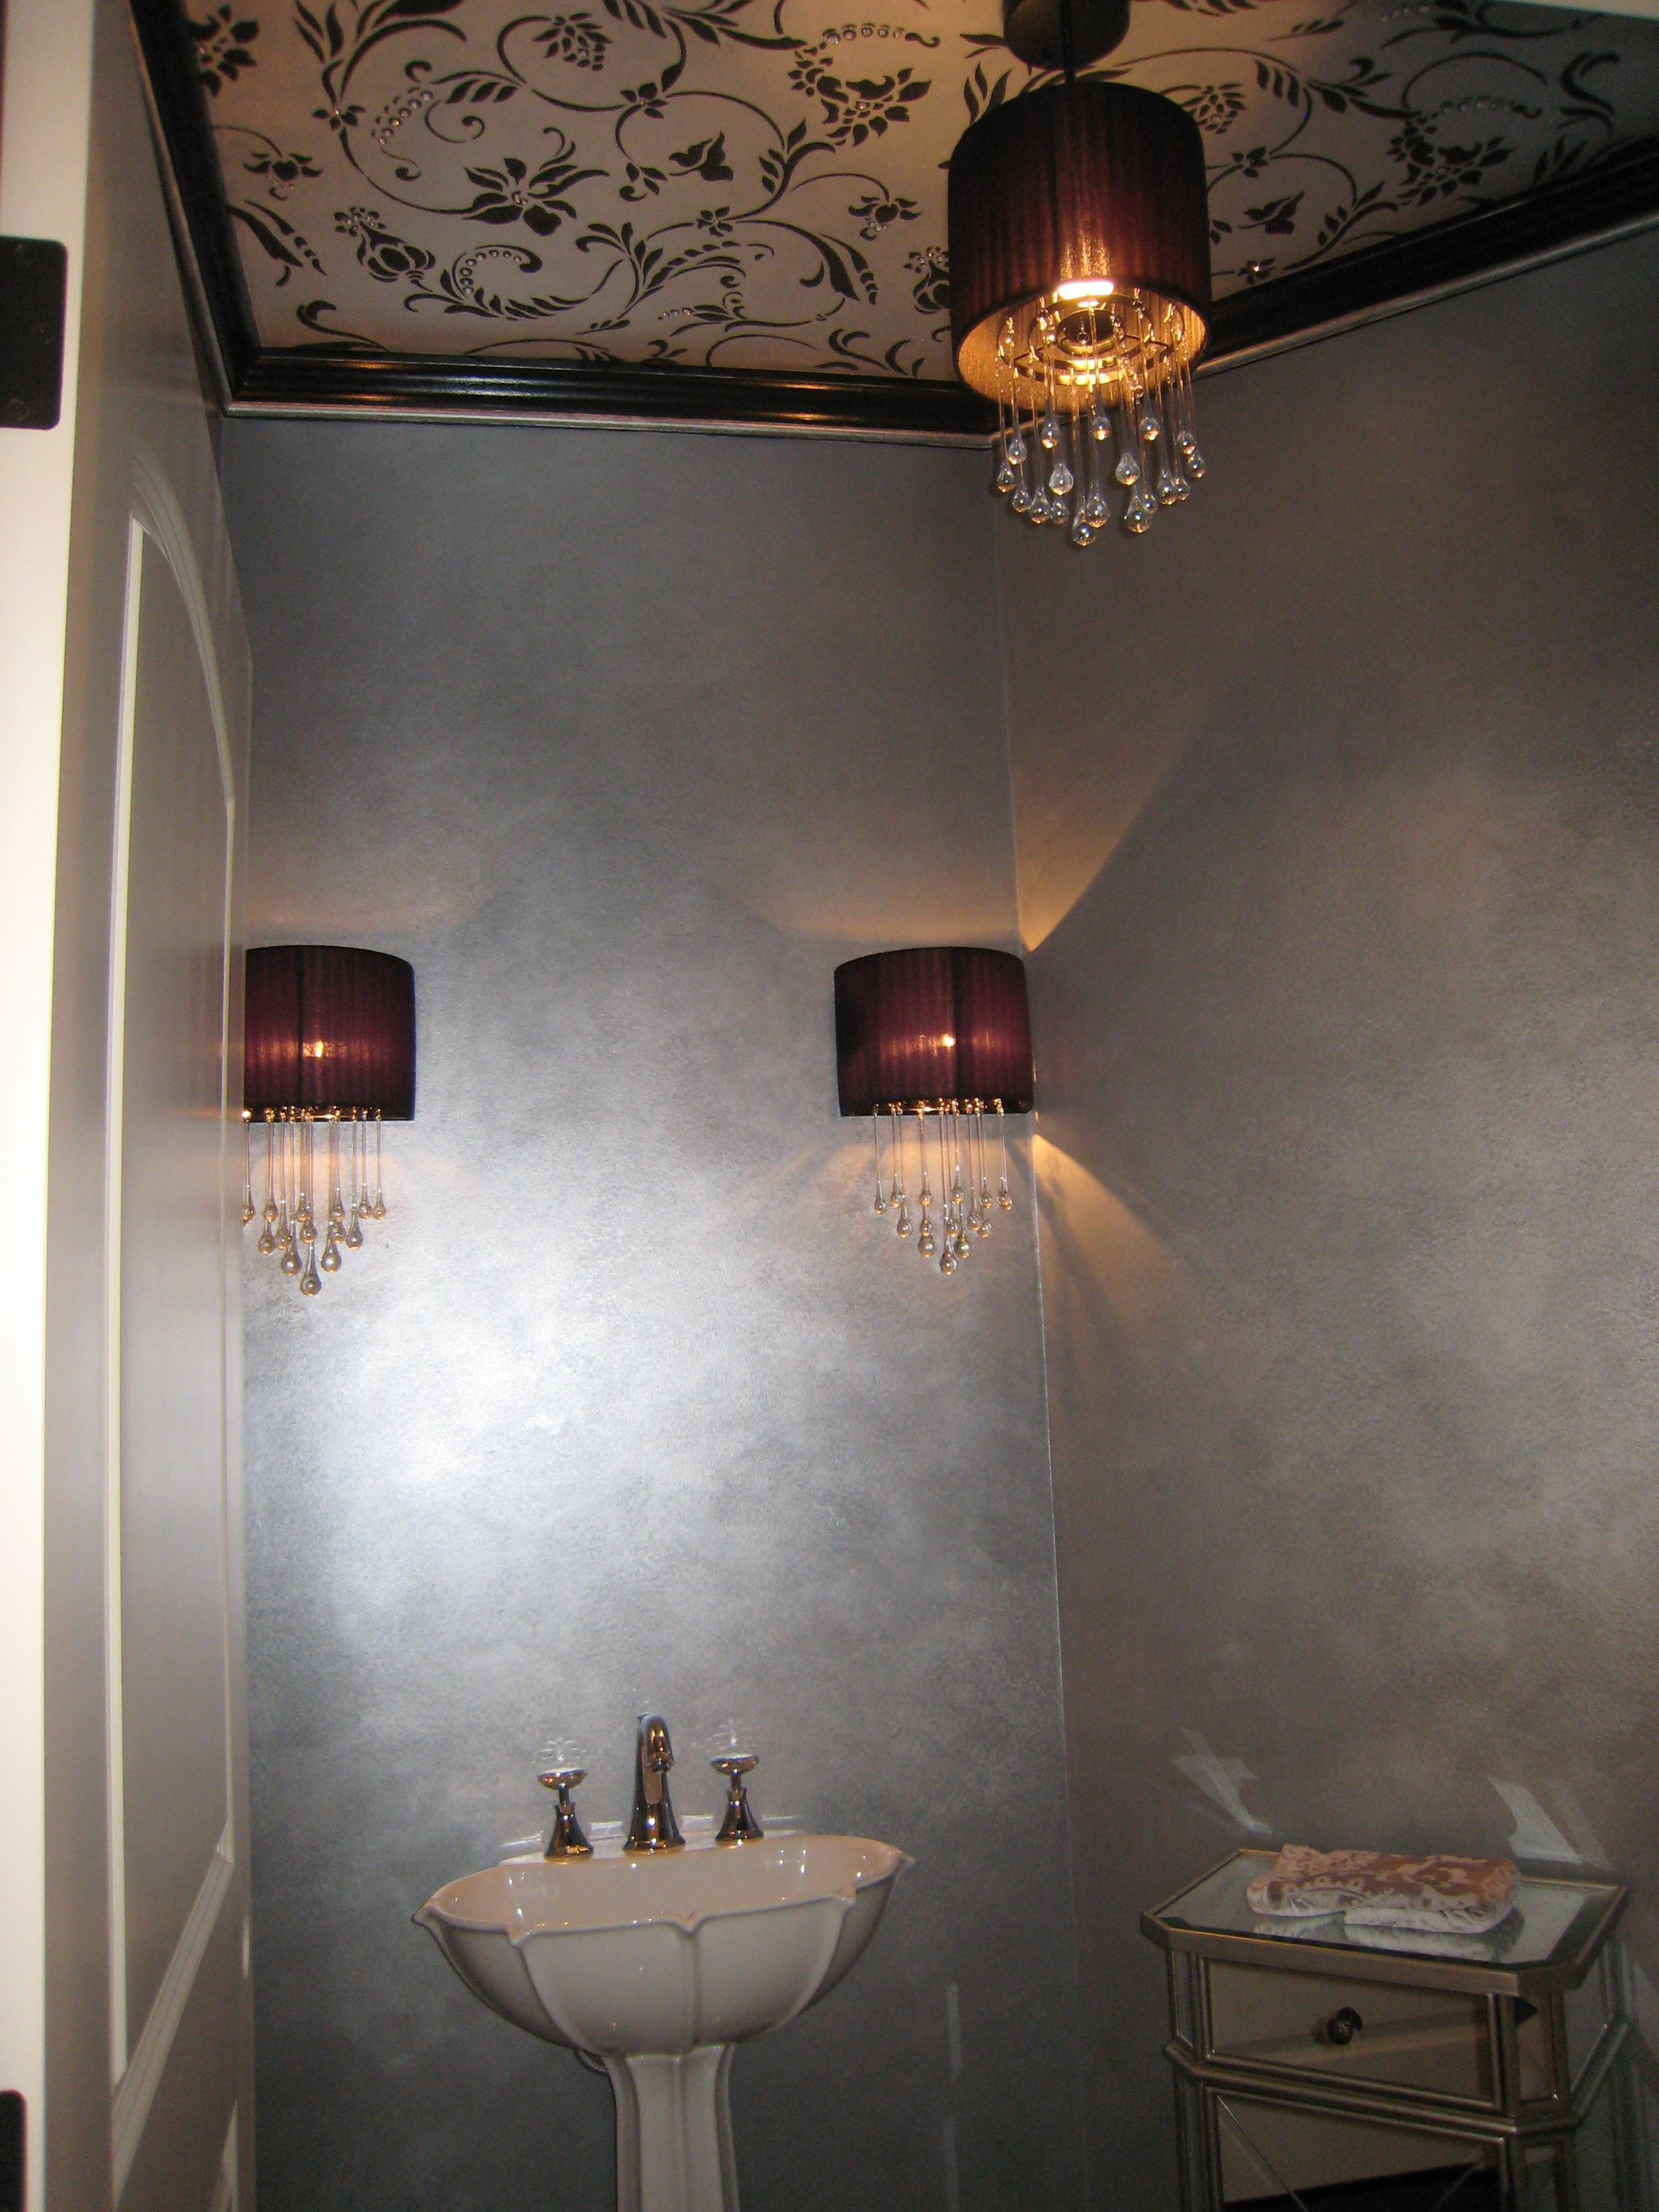 Powder room with metallic paint on ceiling stencil and - How to prepare bathroom walls for painting ...